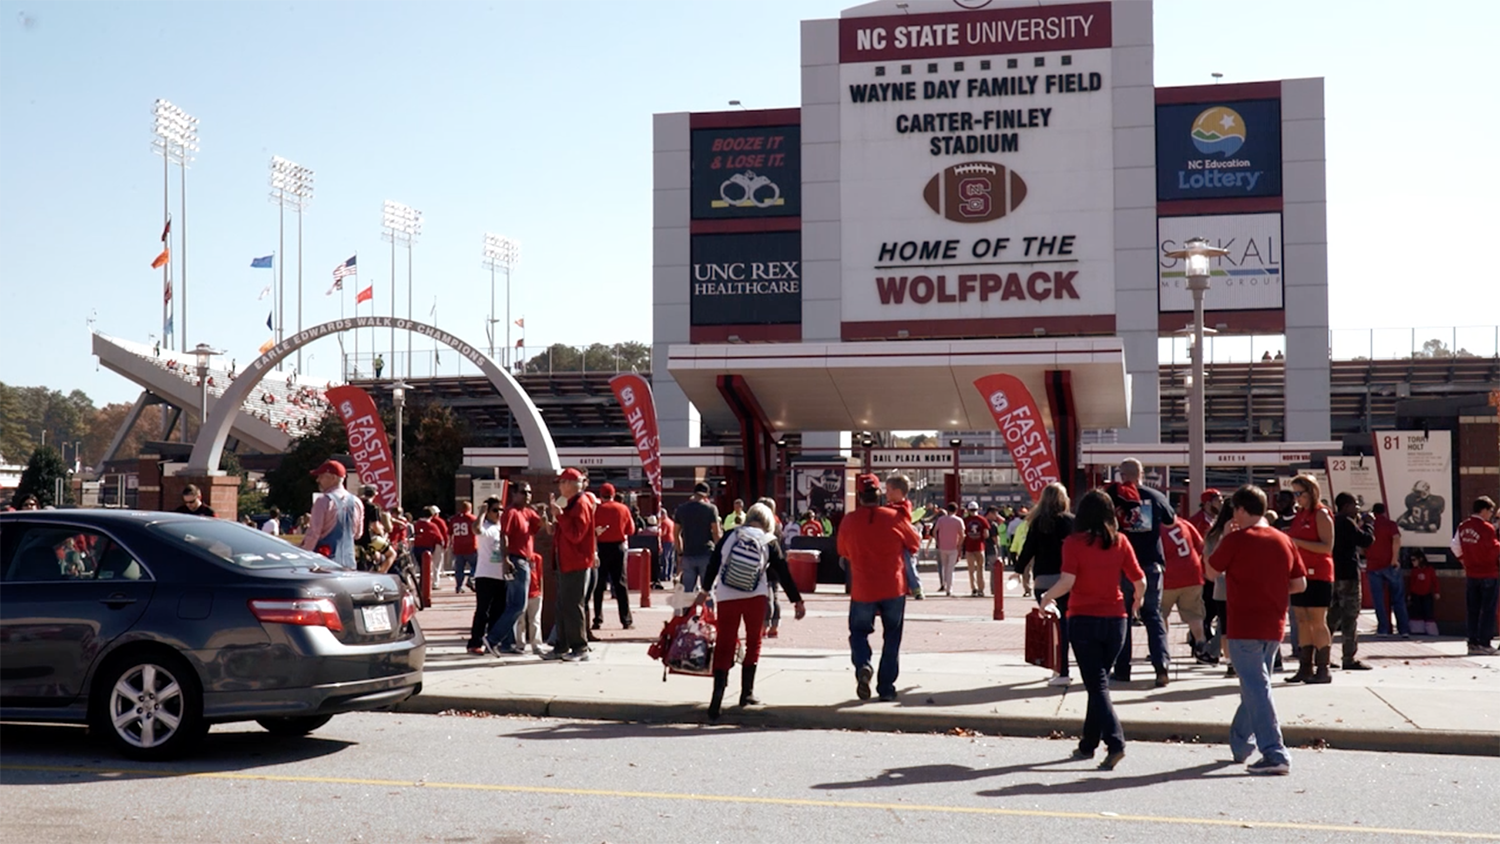 Wolfpack fans at tailgating event